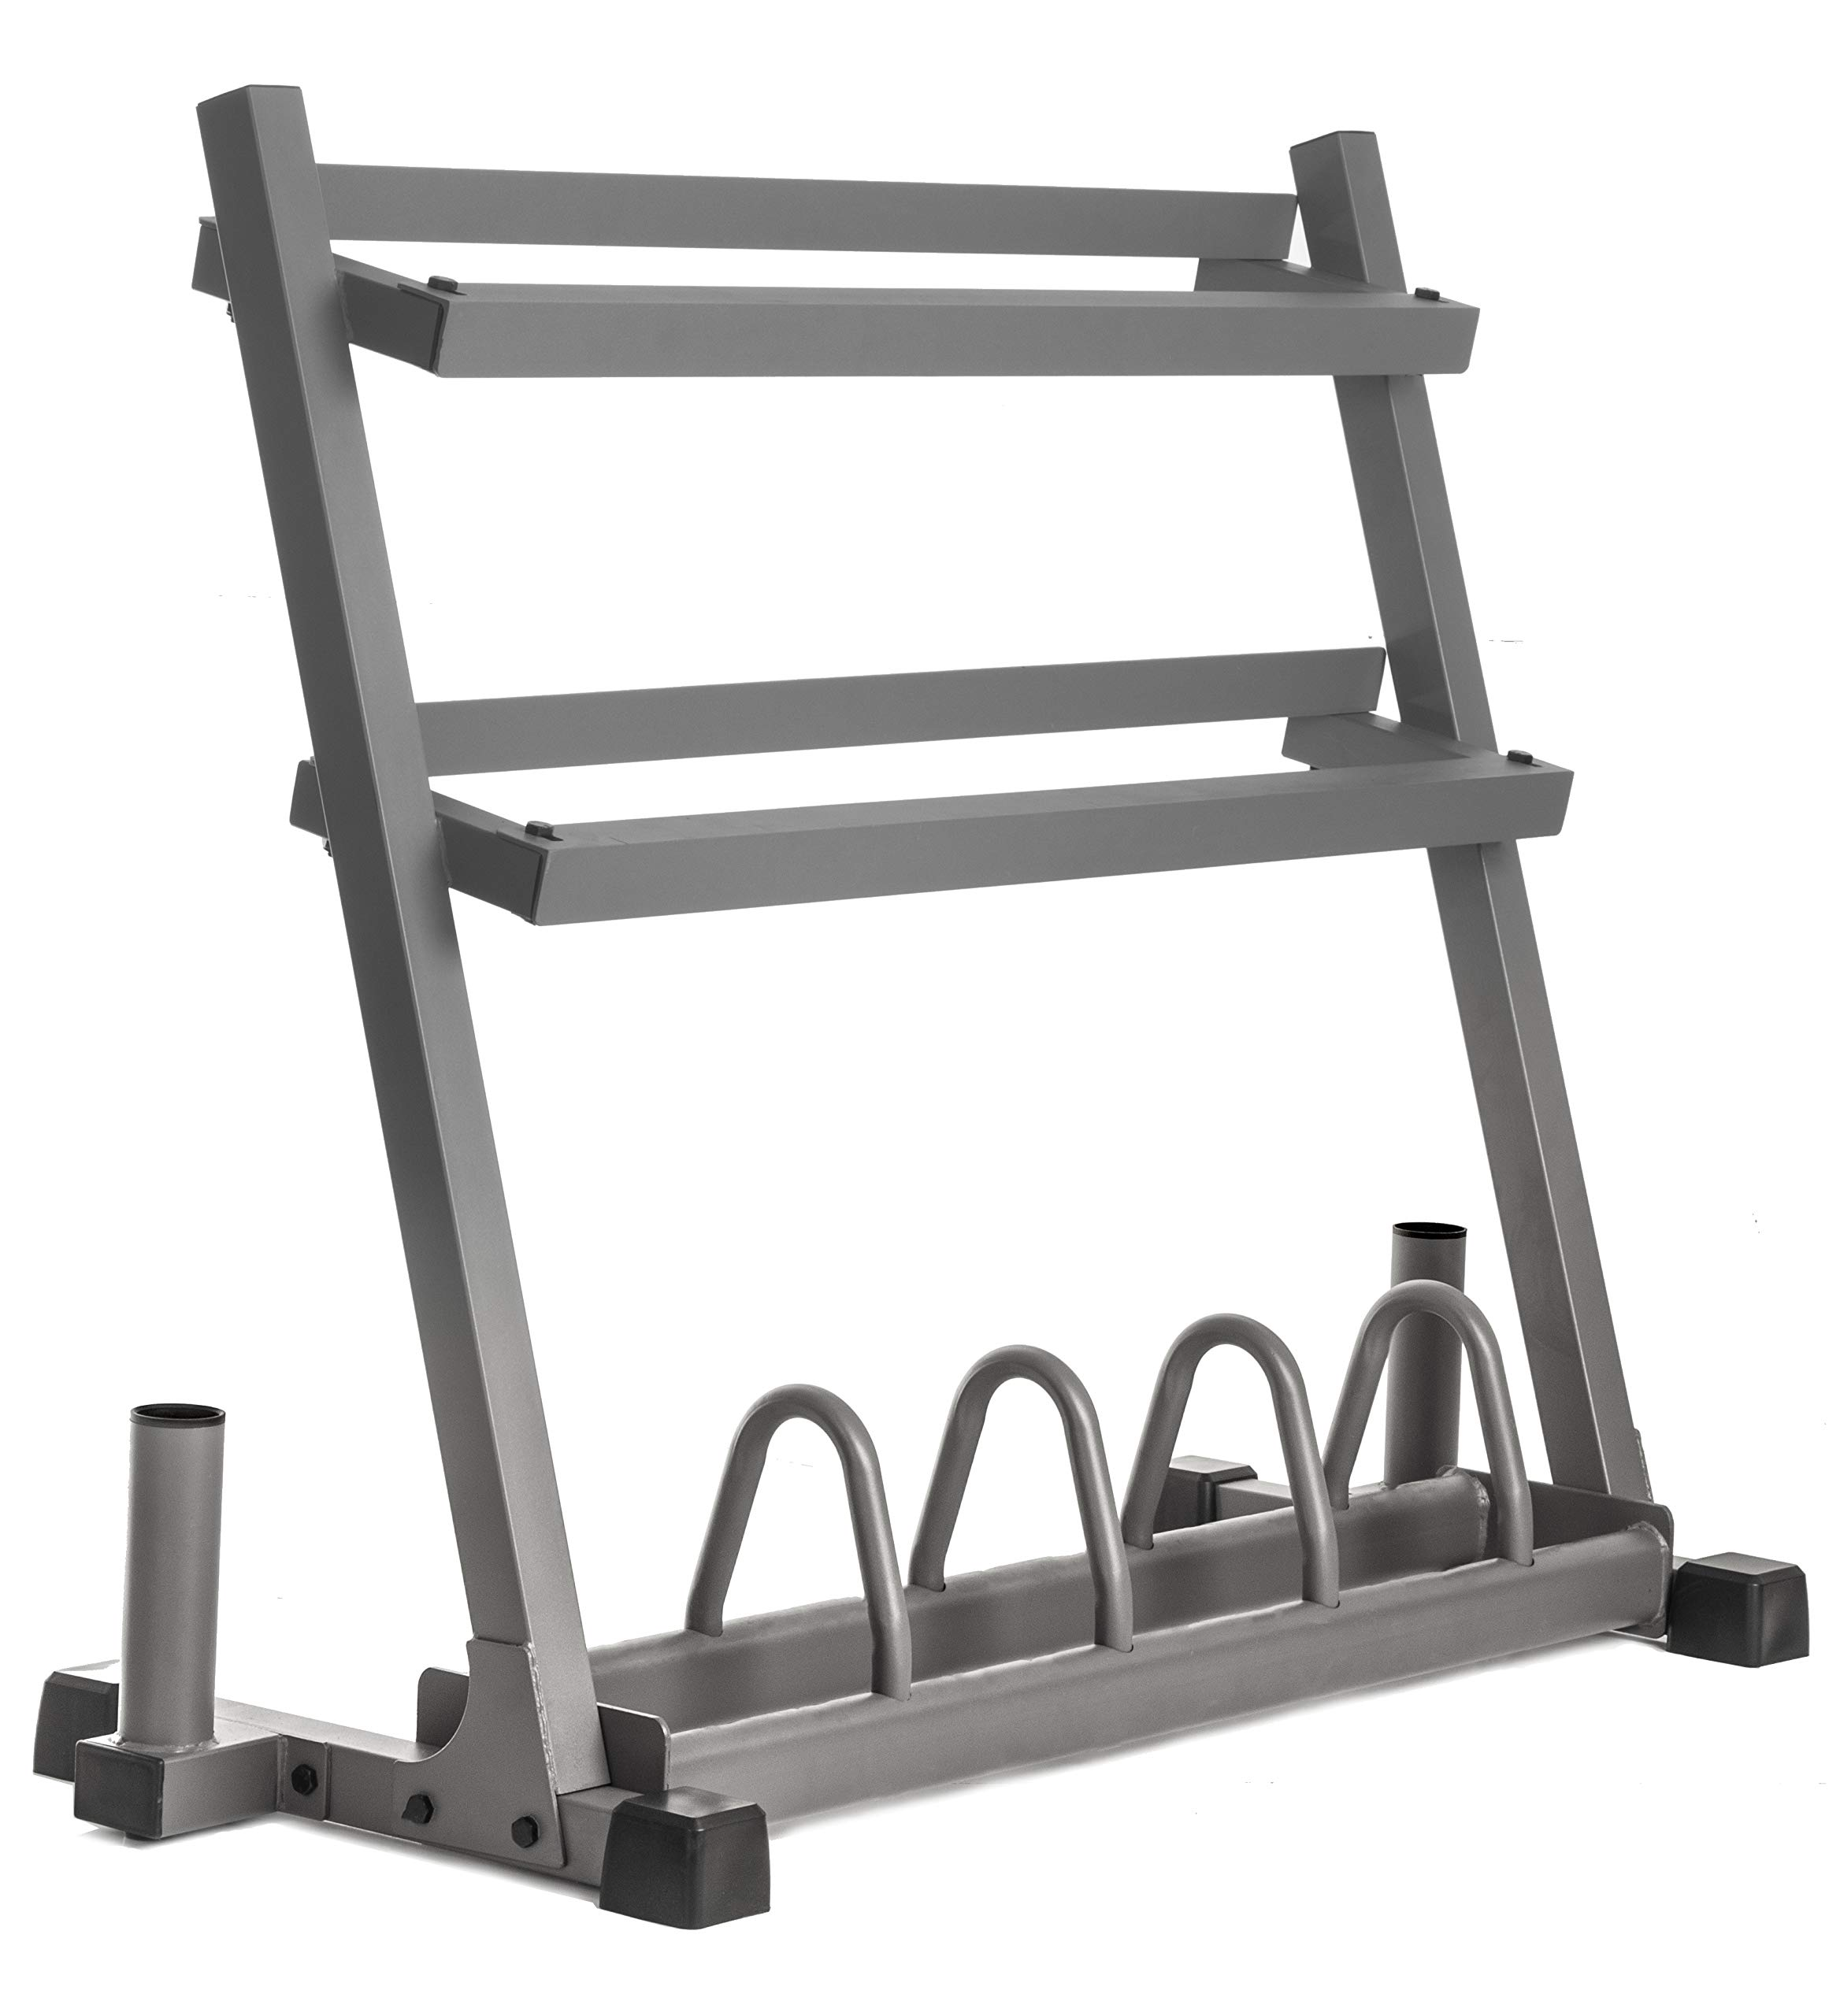 XMark All-in-One Dumbbell Rack, Plate Weight Storage and Dual Vertical Bar Holder, Design Patent Pending by XMark